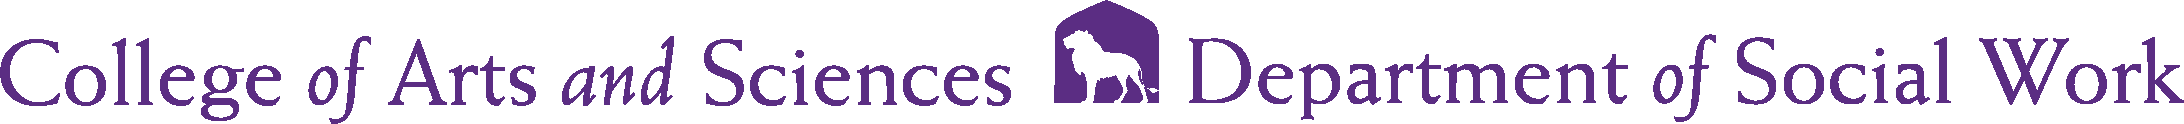 College of Arts and Sciences - Social Work Logo - Purple - Version 2